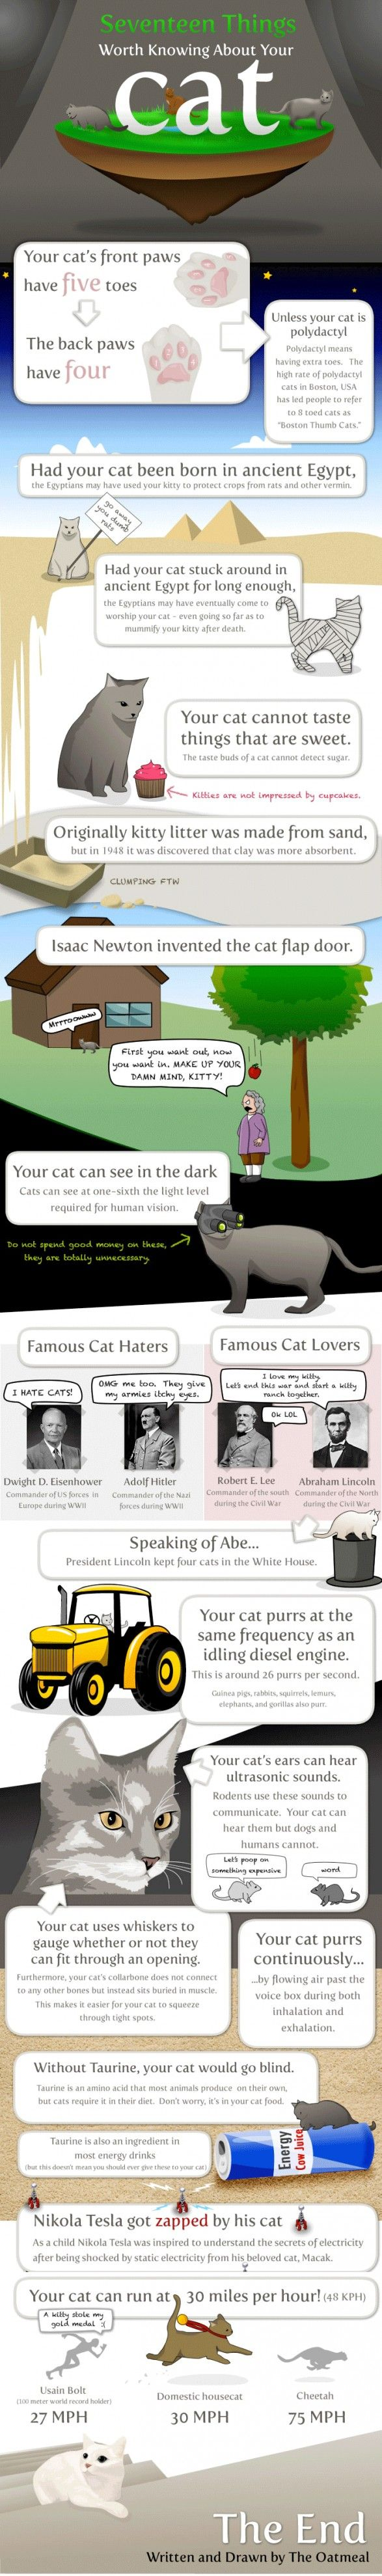 This is a love letter to Matthew Inman who is the brains behind The OatmealHis current smash bestselling bookHow To Tell If Your Cat Is Plotting to You is brilliant but his infographics turn me into mush. It like he's gone inside my brain andable to put what I know about cats onto paper better …